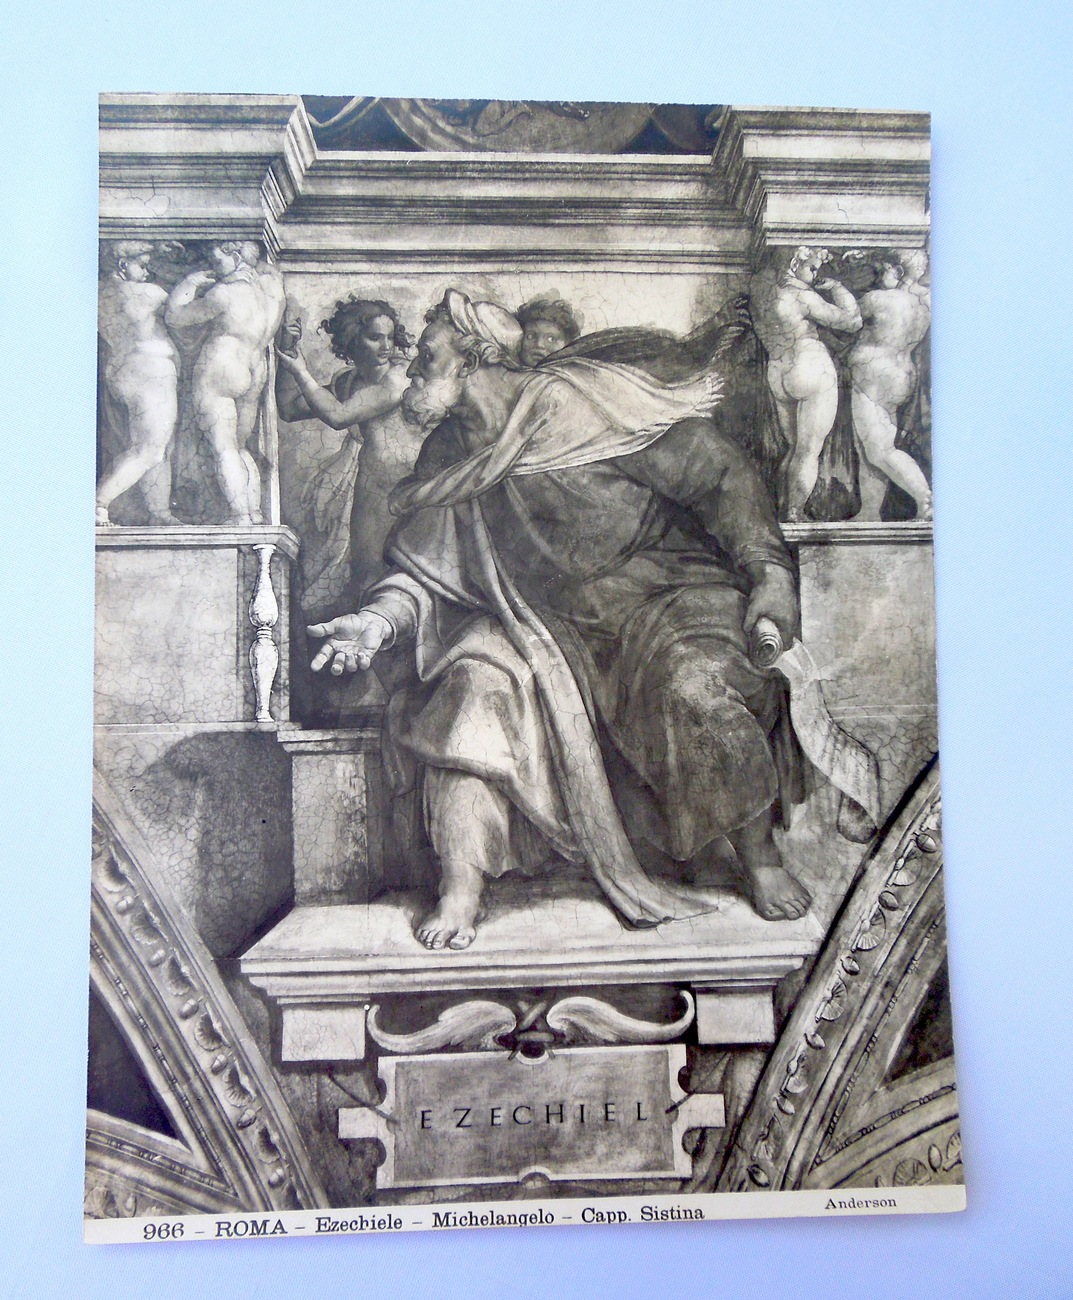 Upstairs dresser drawer   antique print appears to be heliogravure on  cardboard like paper ezechiel at  sistine chapel by michelangelo  marked roma and numbered 966 and